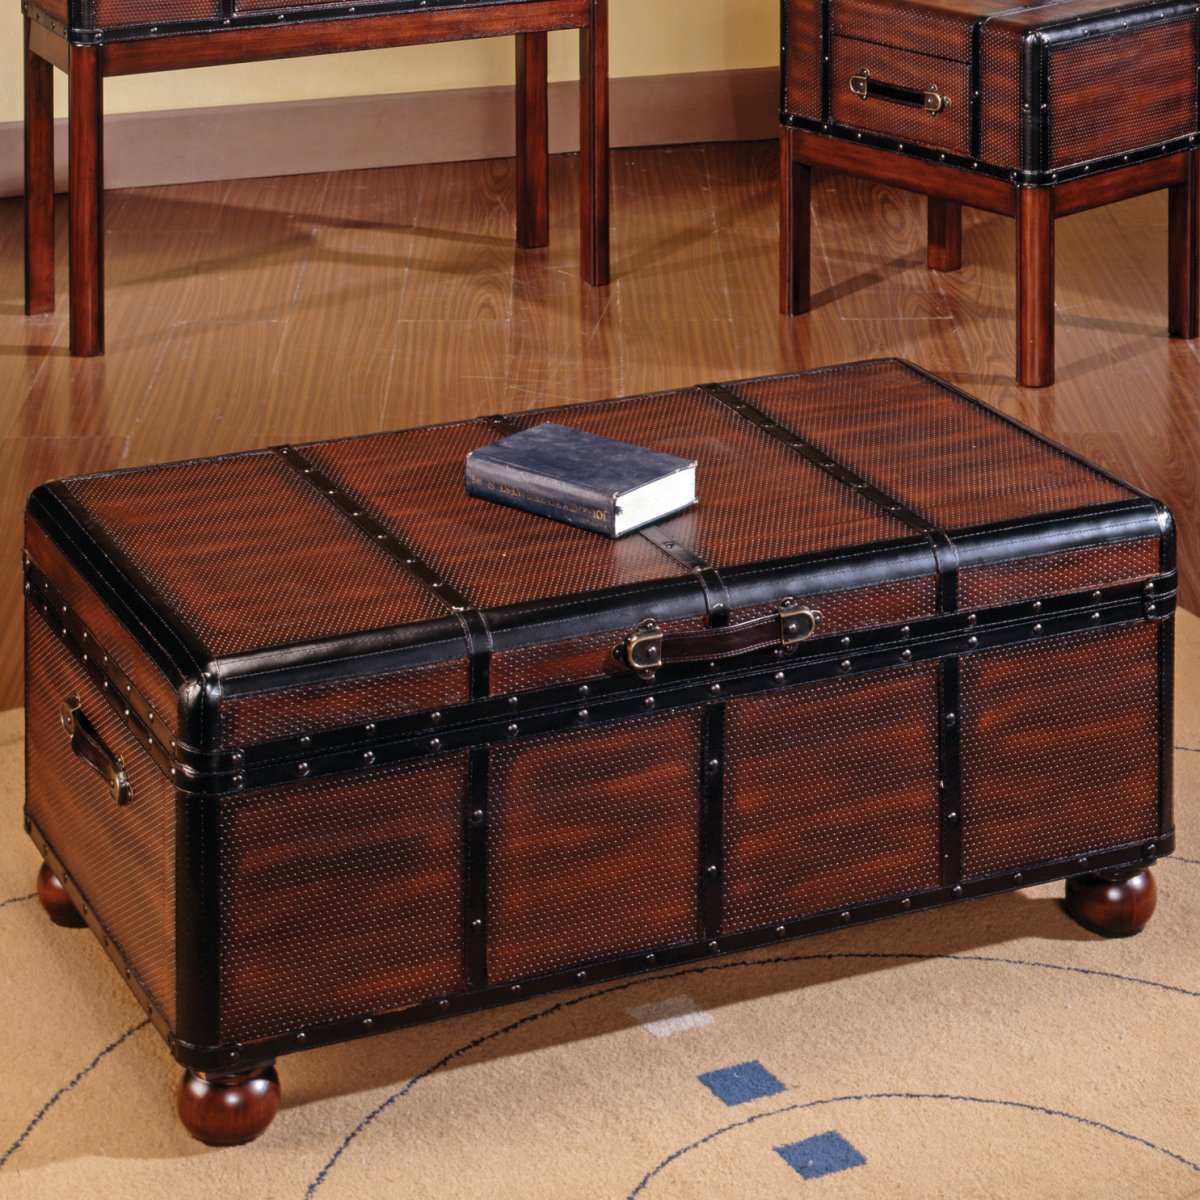 How to build a trunk coffee table Trunk coffee tables